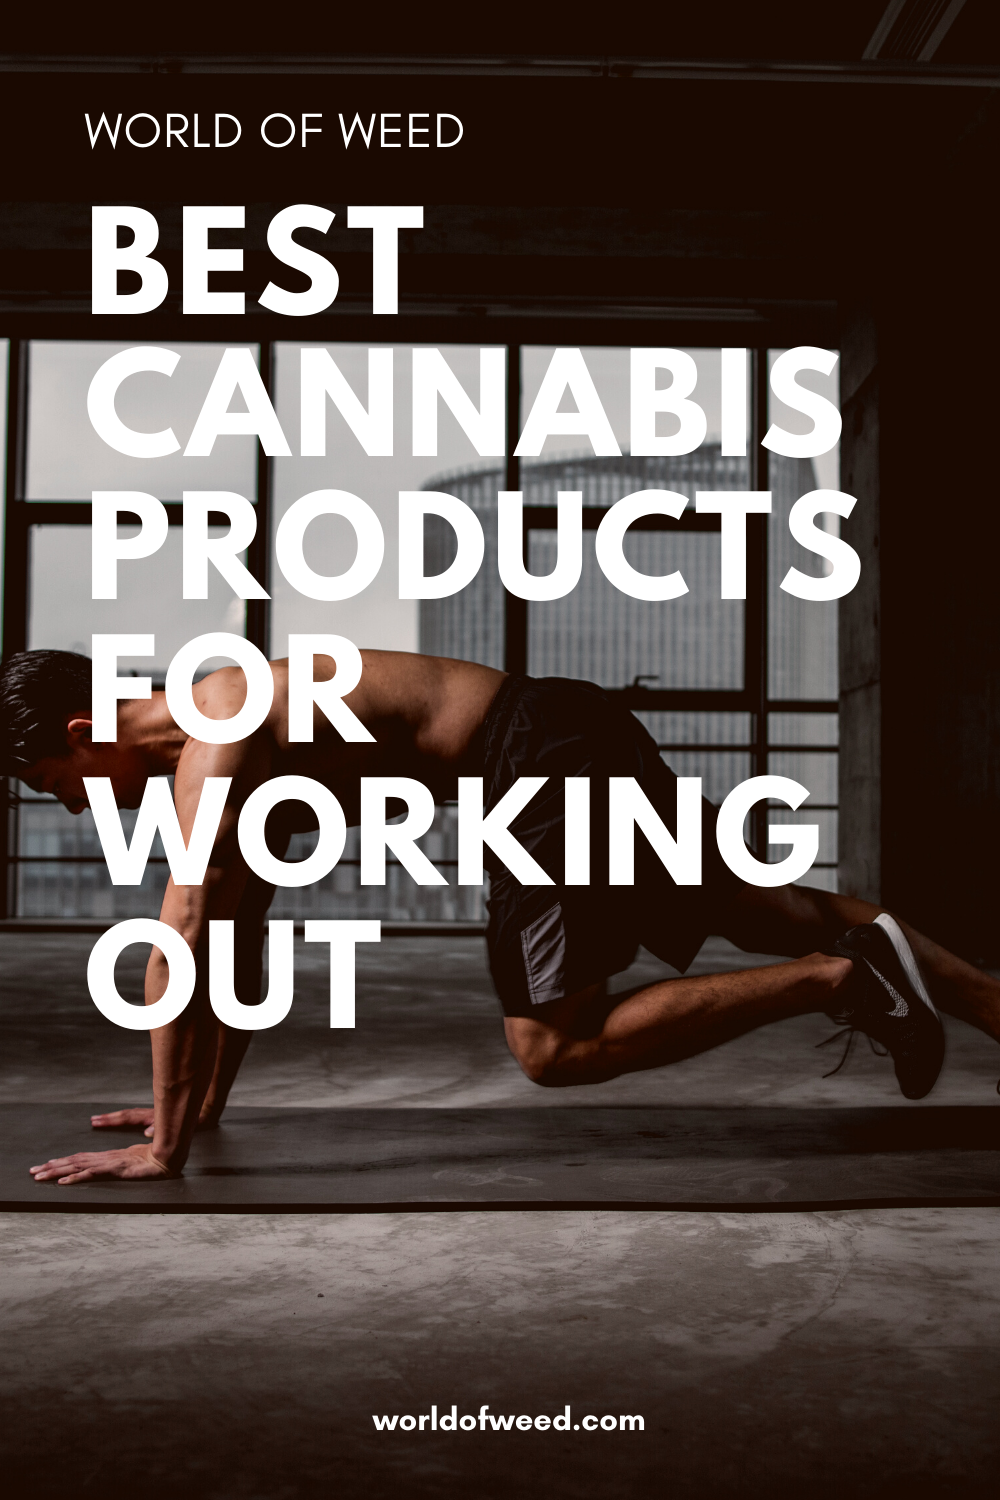 Best Cannabis Products for Working Out